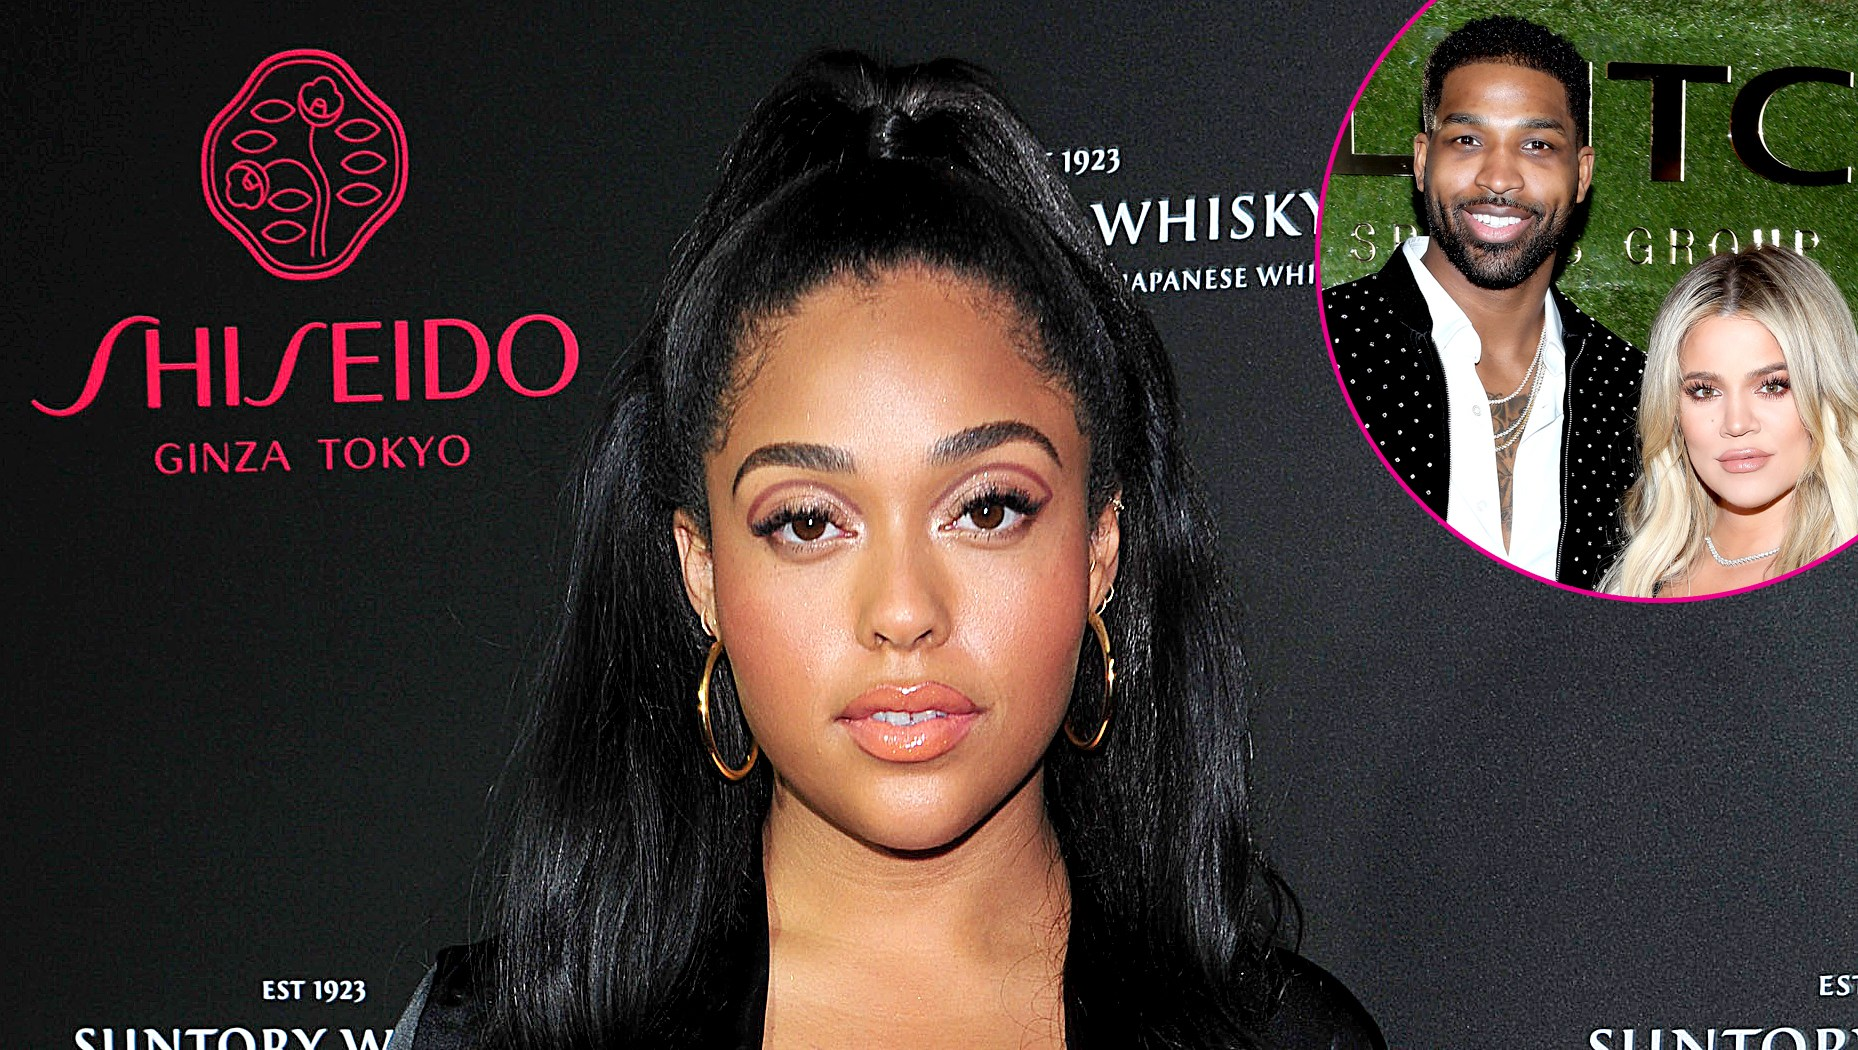 Jordyn--Woods-Once-Said-Khloe-and-Tristan-Have-'Great-Chemistry-promo